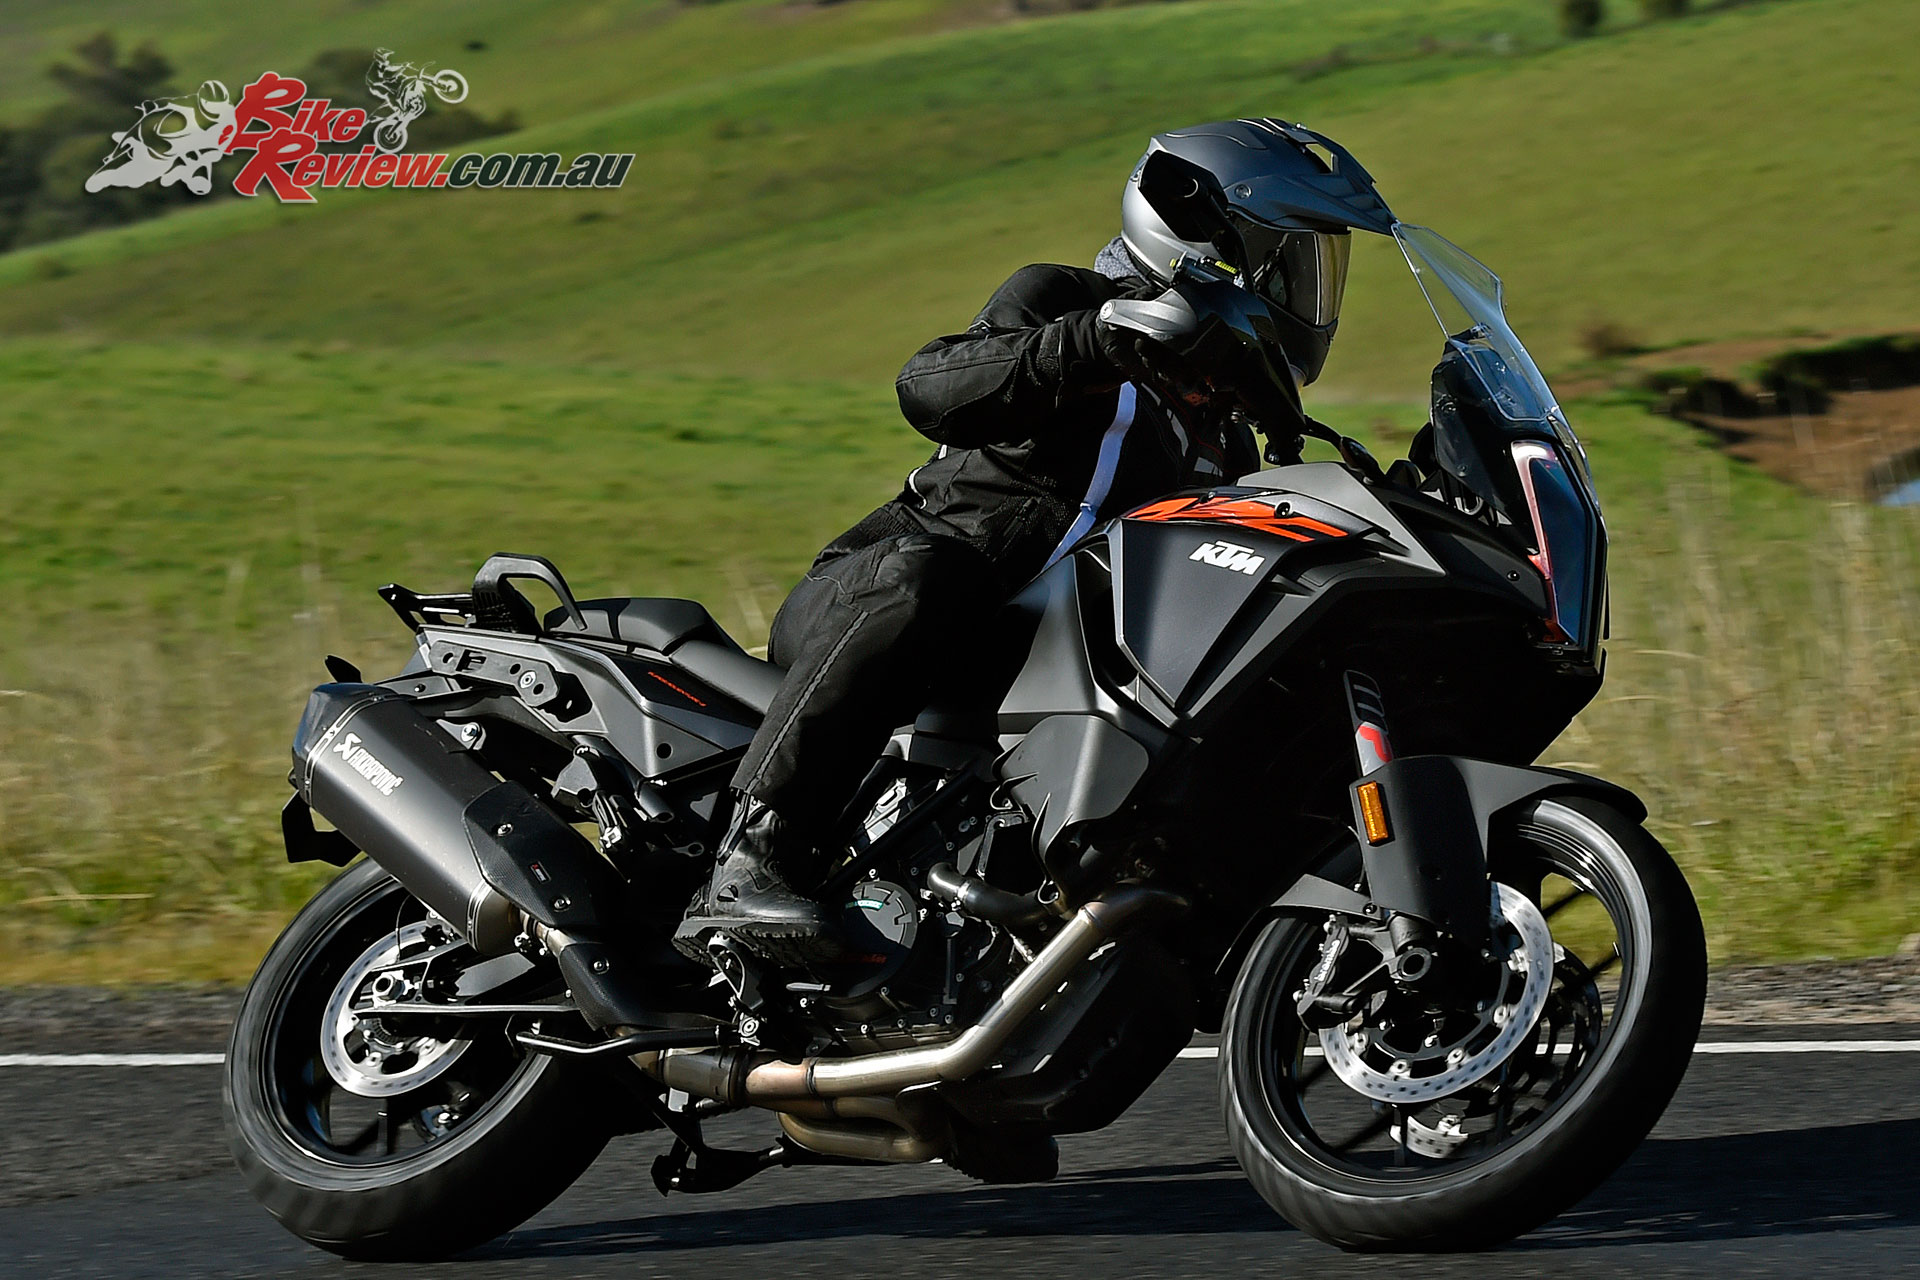 Pommie testing out the KTM 1290 Super Adventure S at the recent Australian launch